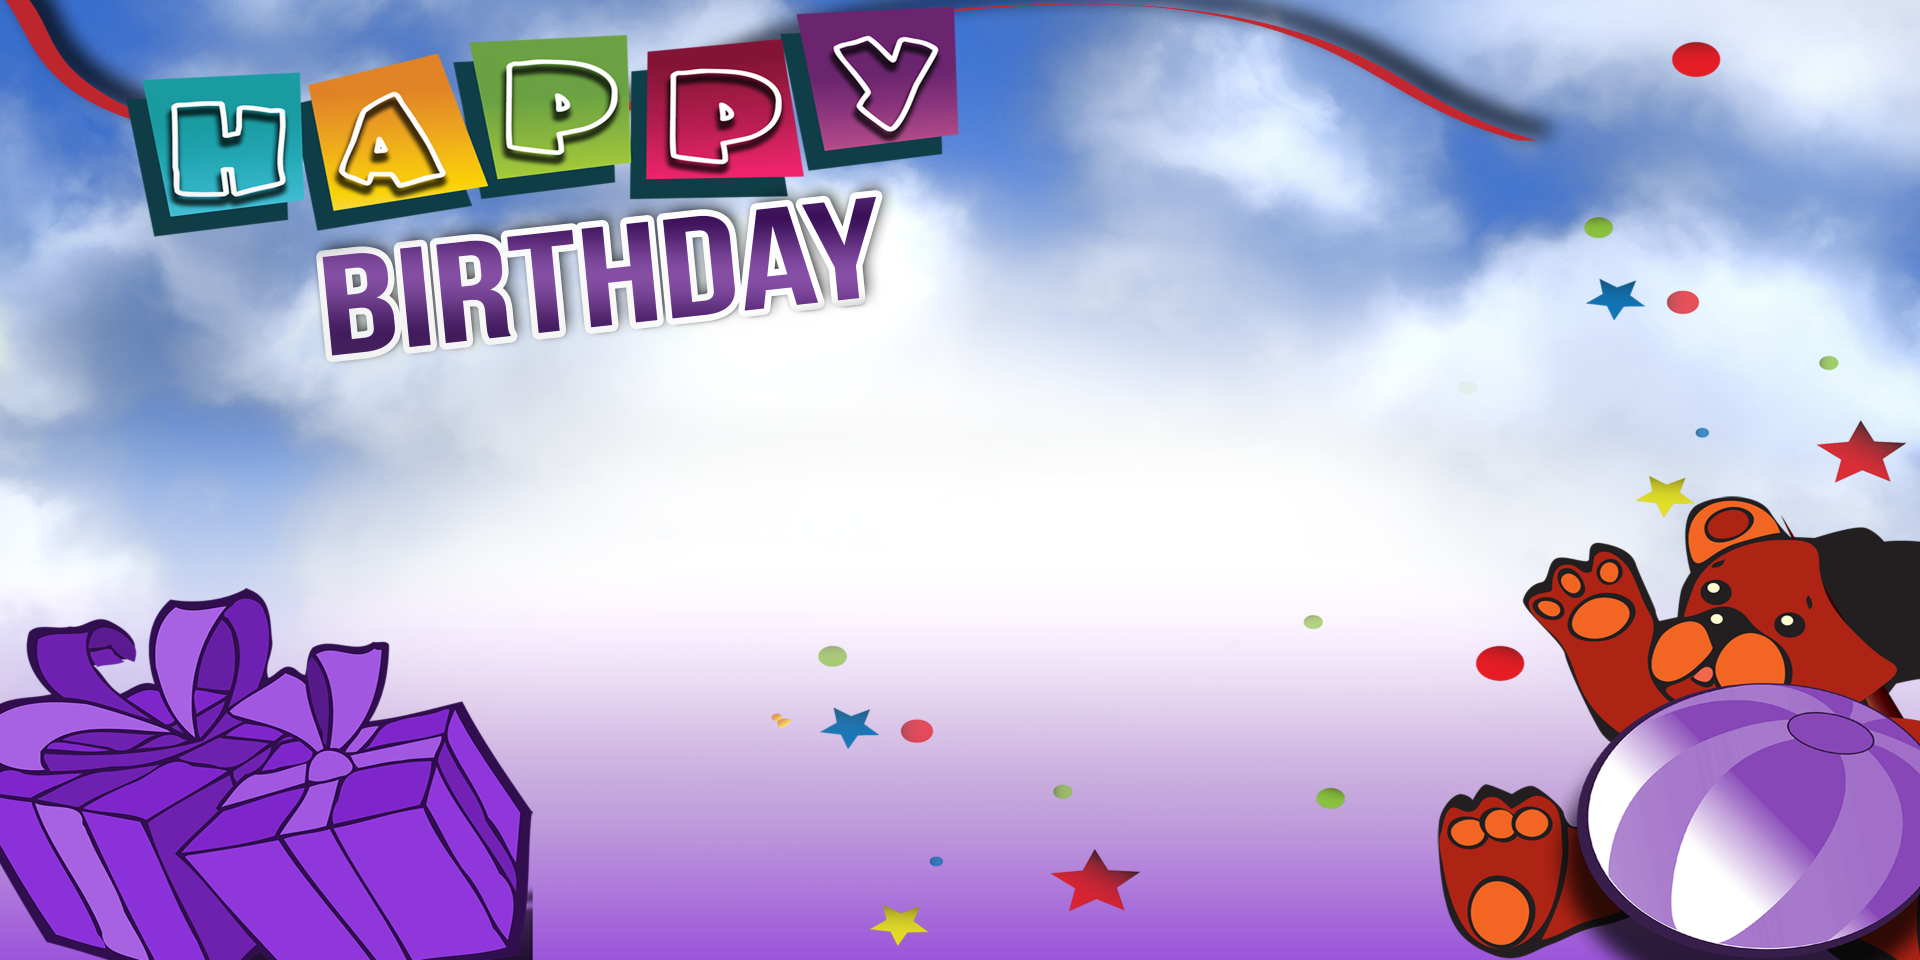 birthday banner images  Happy Birthday Banner - Purple Bear - Vinyl Banners | Gatorprints